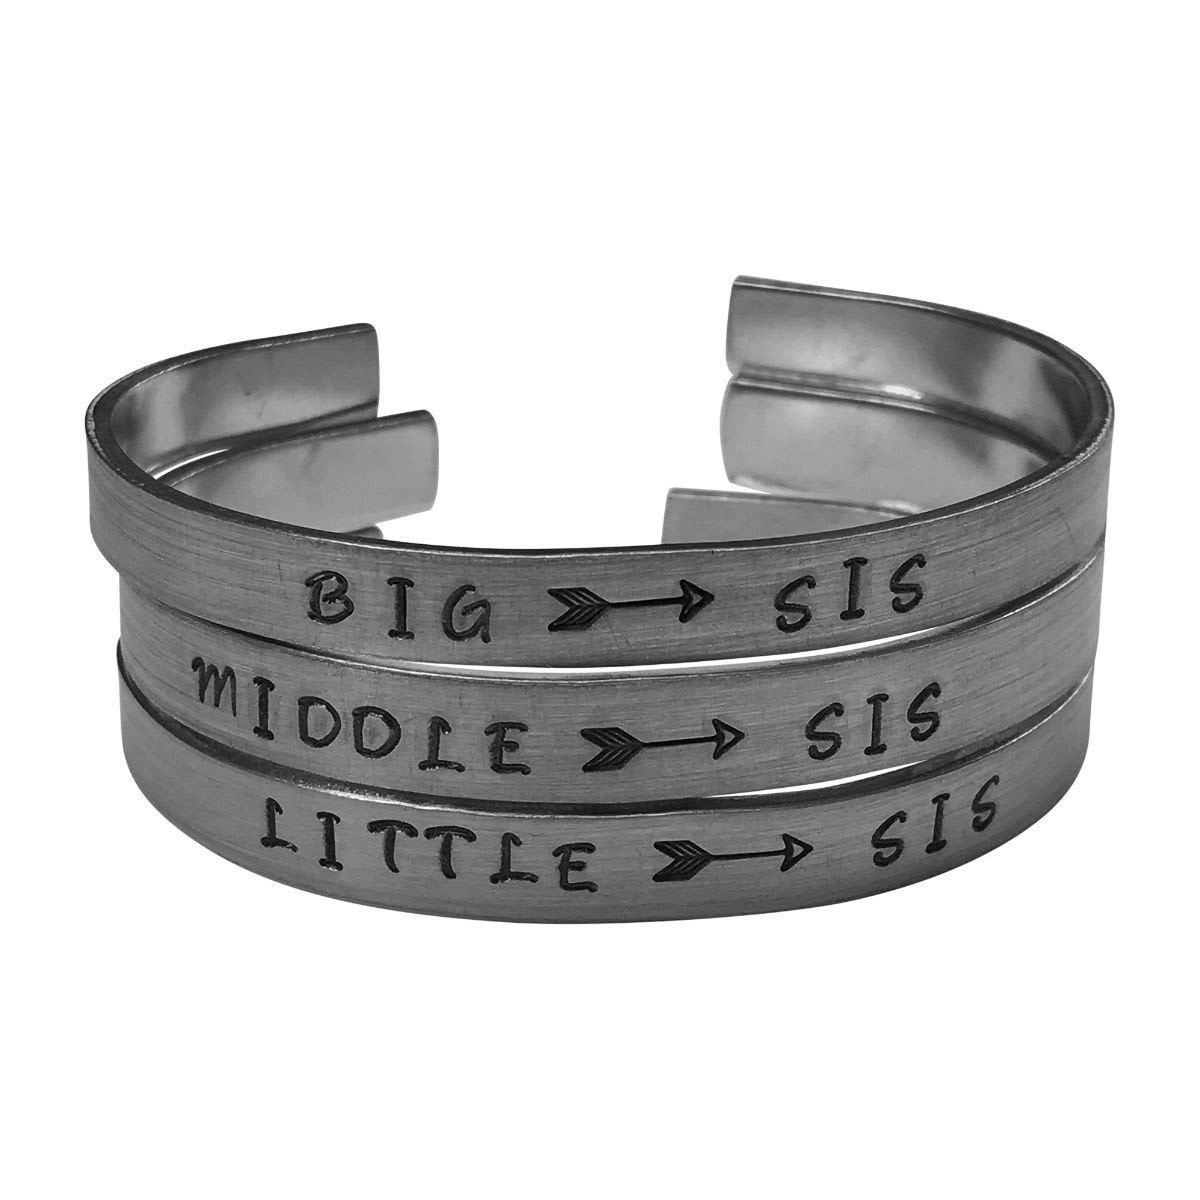 Big Sis/Middle Sis/Little Sis - Hand Stamped Aluminum Cuff Bracelets Set Arrow 3 Sisters, Friendship, BFF,Sorority Sisters